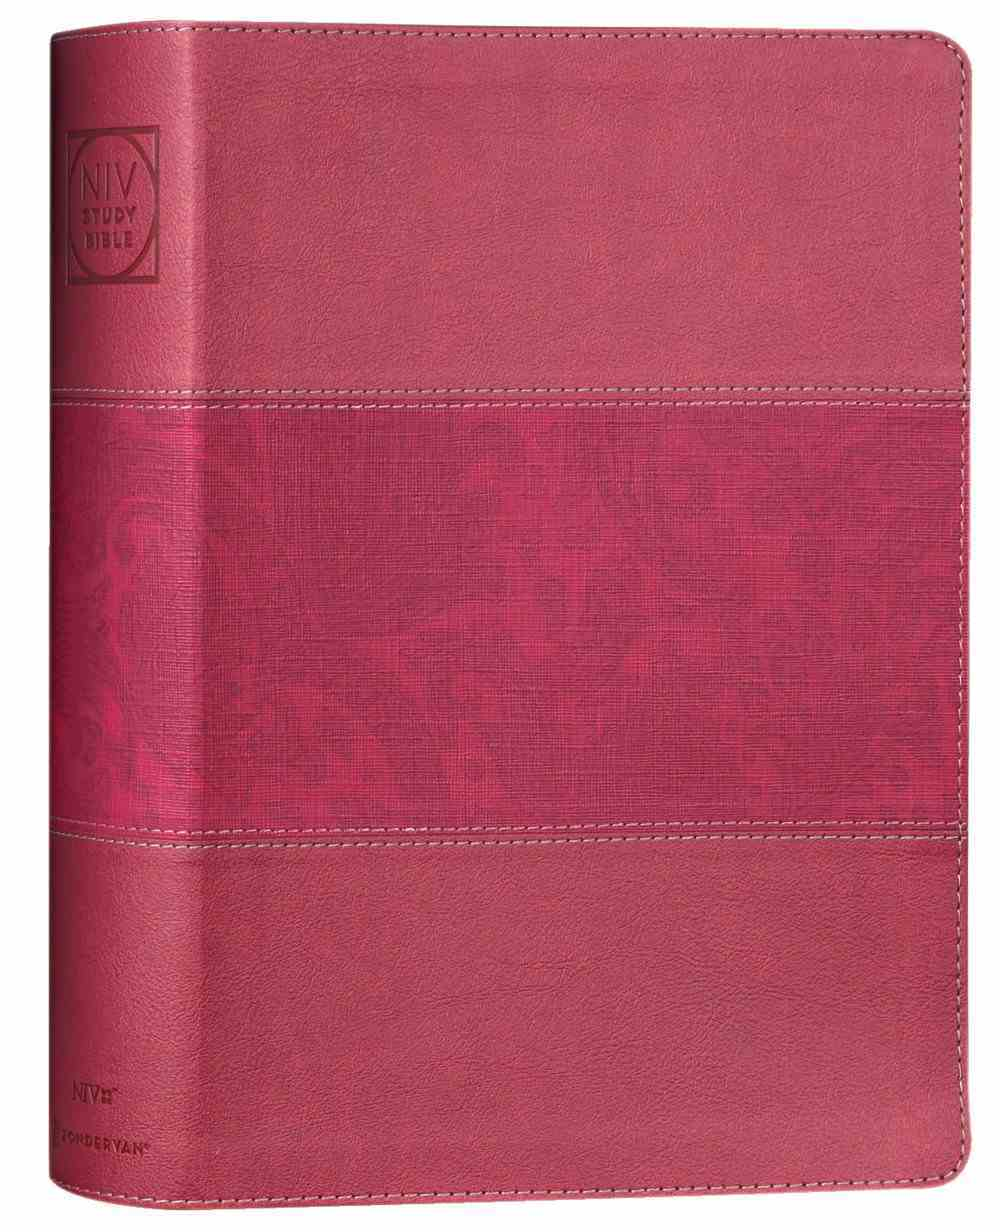 NIV Study Bible Large Print Burgundy Indexed (Red Letter Edition) Fully Revised Edition (2020) Premium Imitation Leather